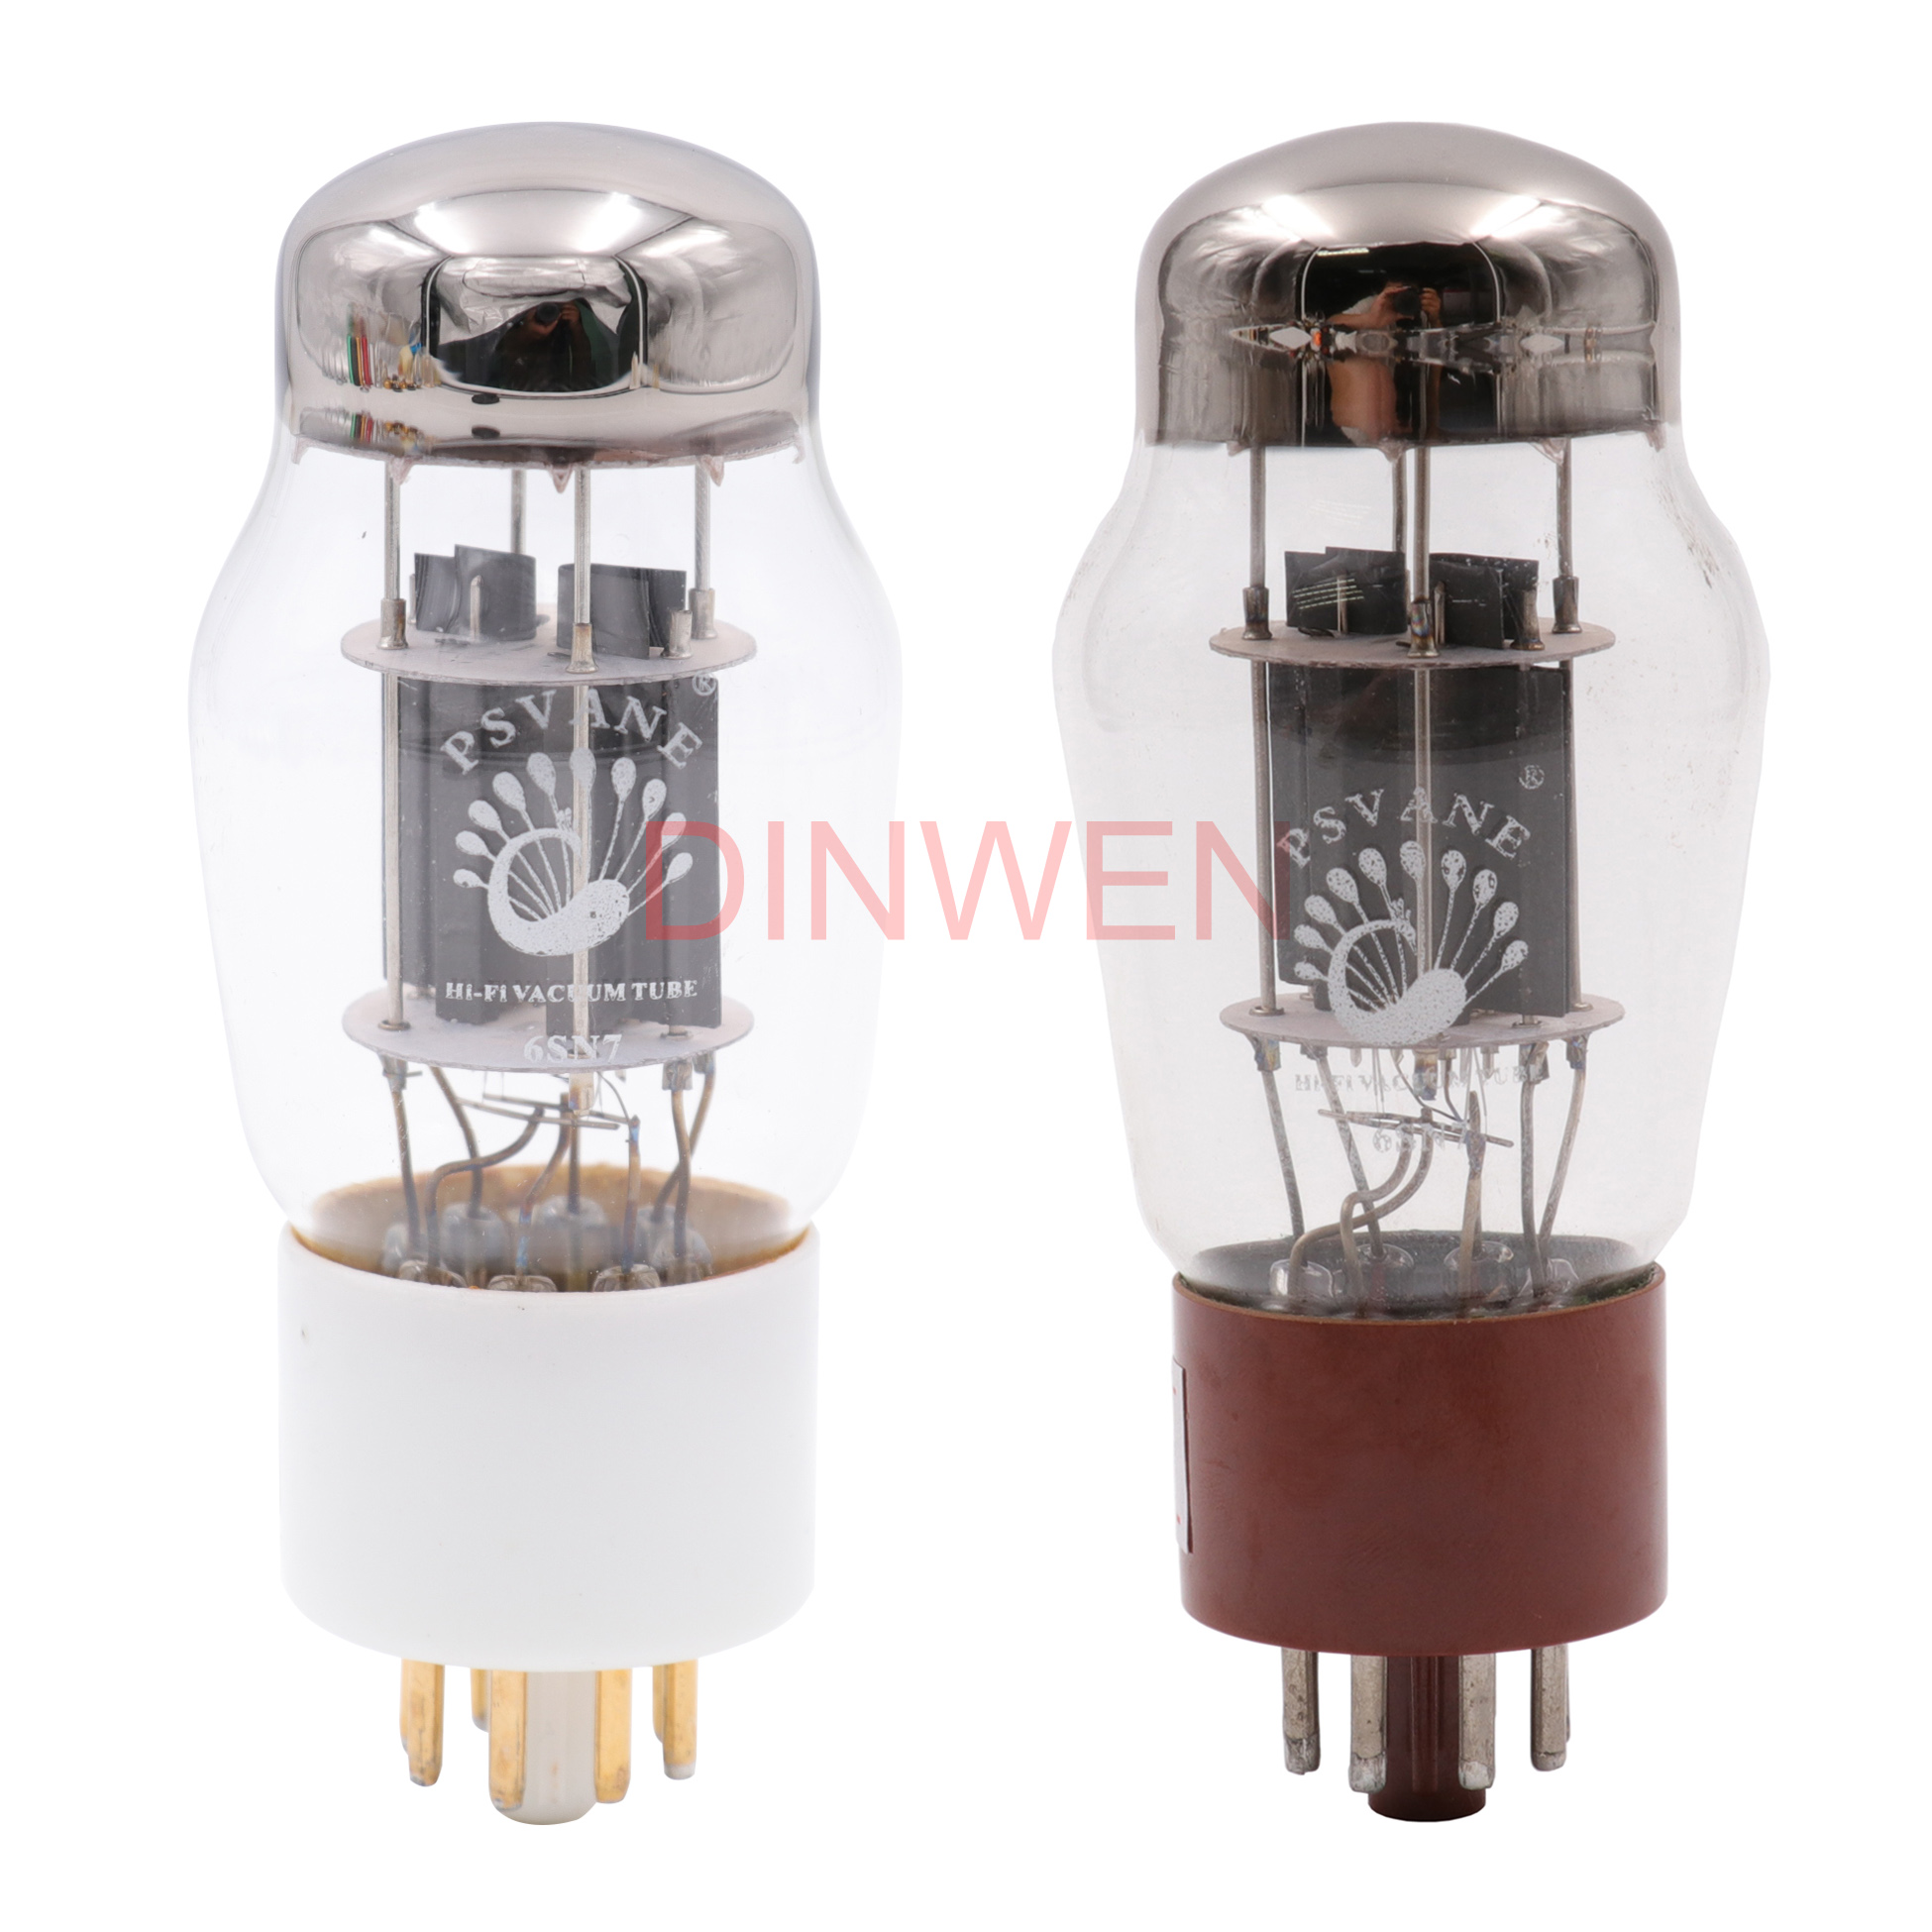 ⊹ Low price for matched pair vacuum tube and get free